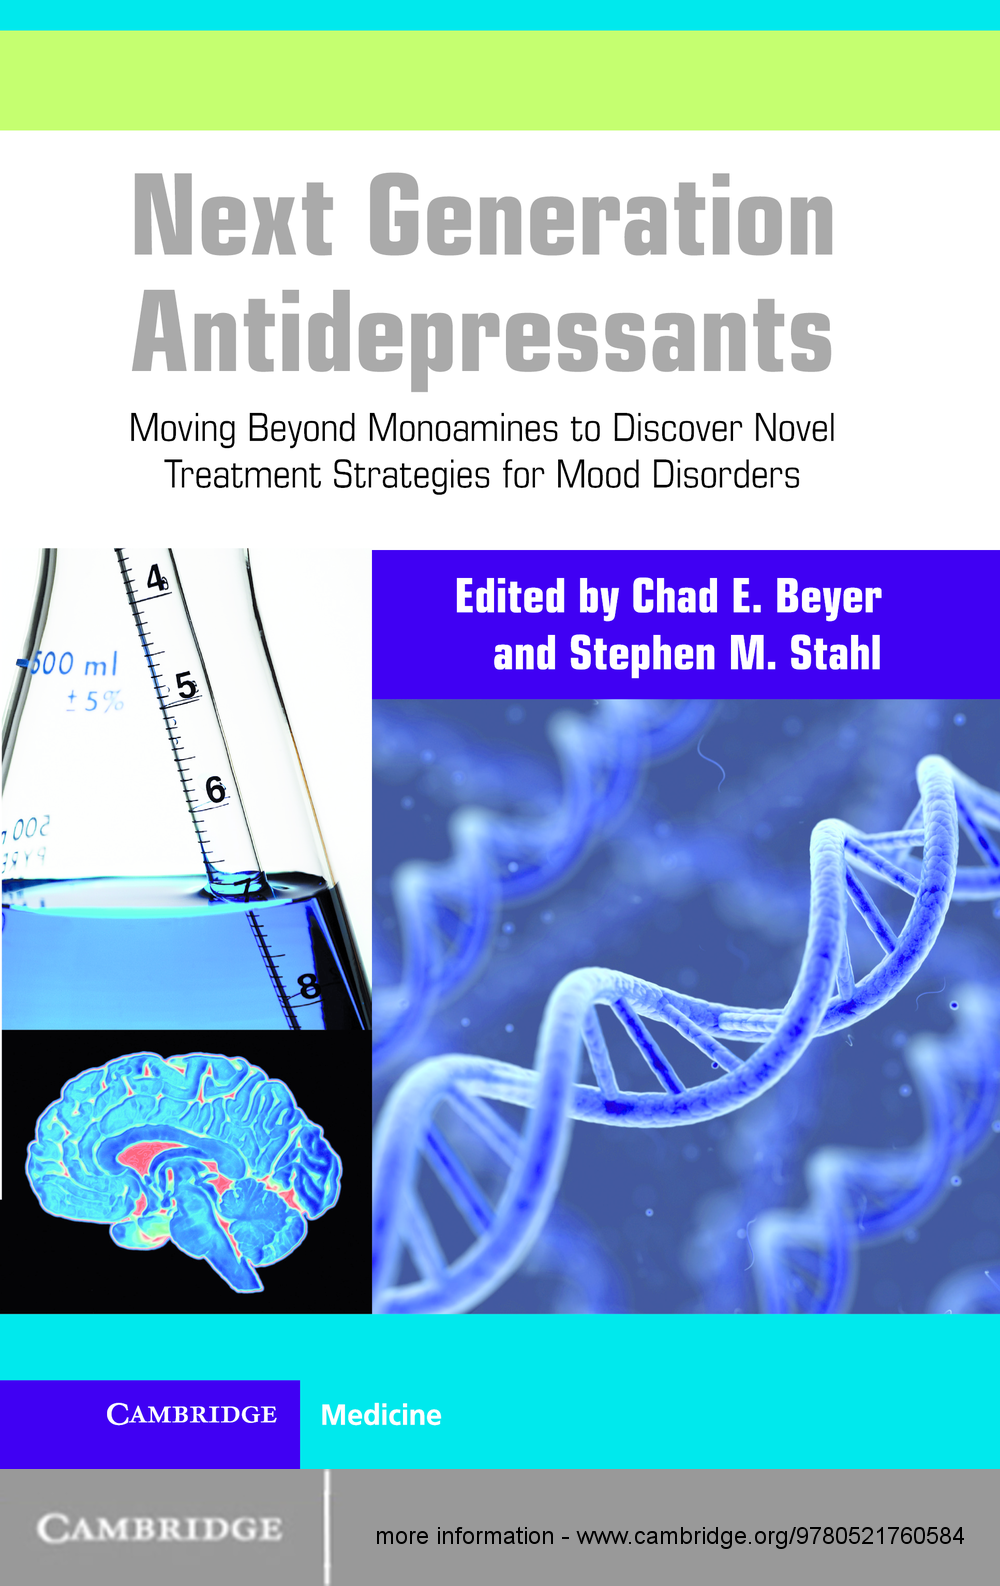 Next Generation Antidepressants Moving Beyond Monoamines to Discover Novel Treatment Strategies for Mood Disorders